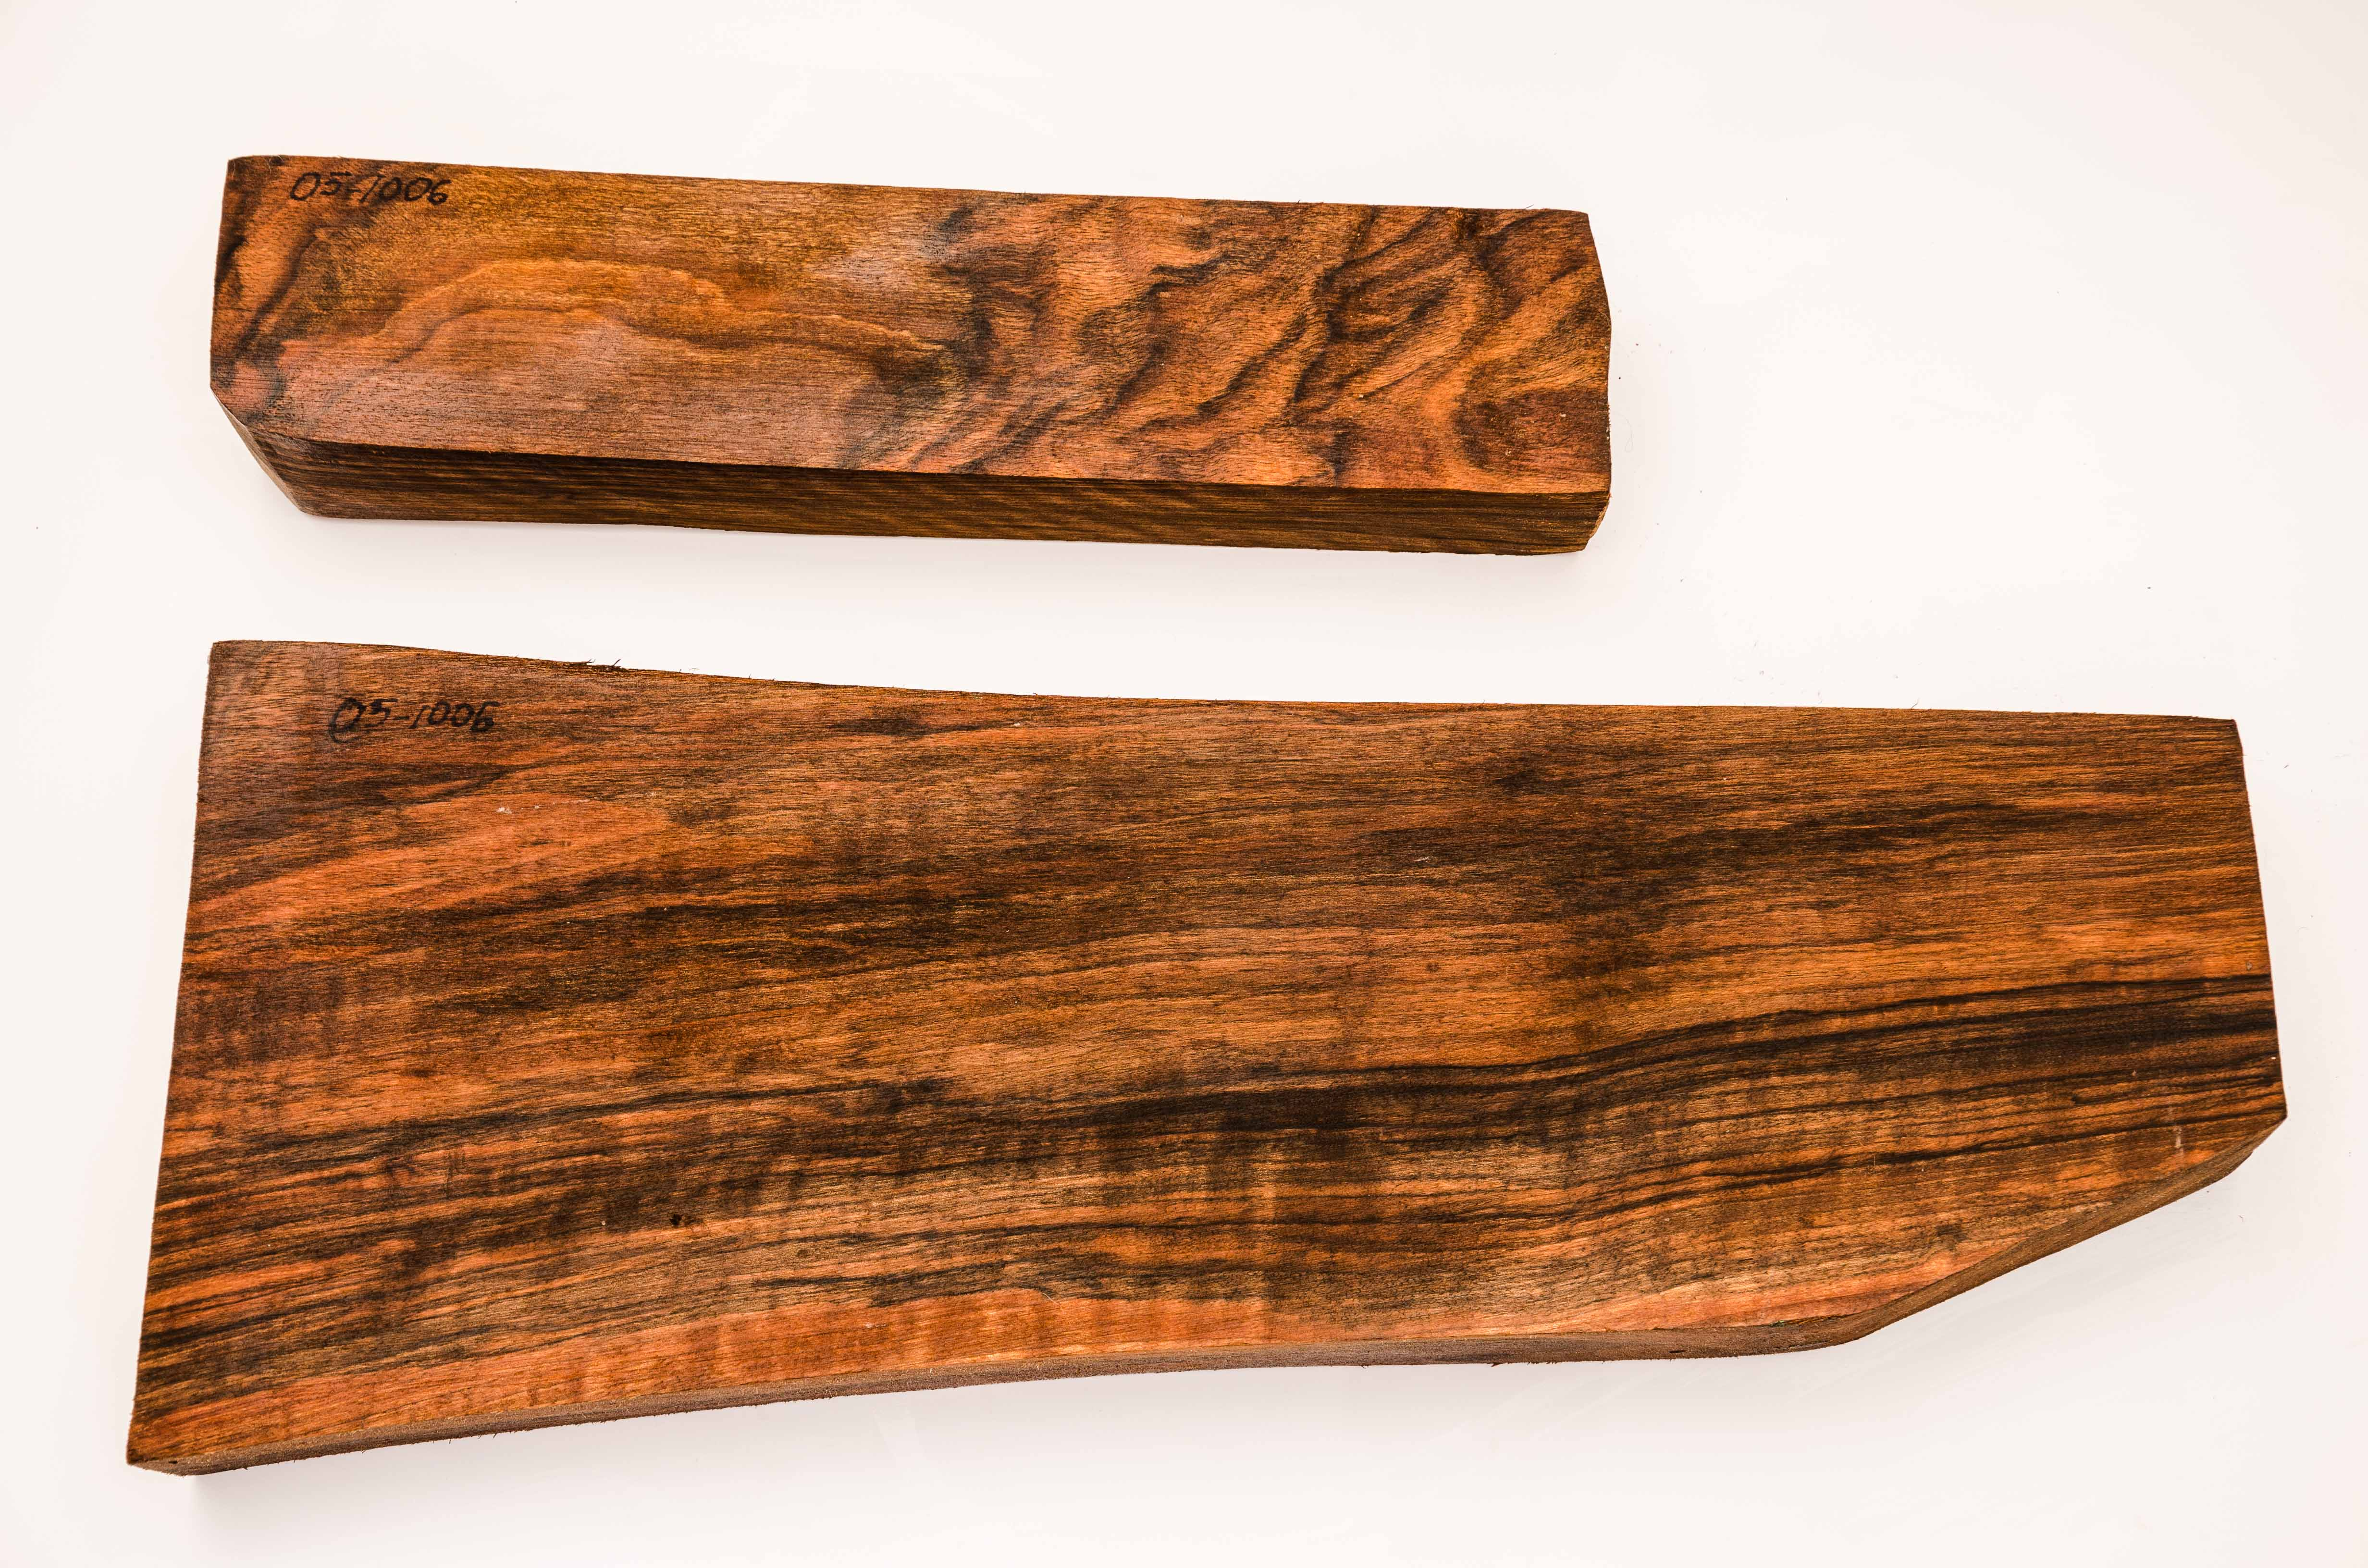 walnut_stock_blanks_for_guns_and_rifles-0530